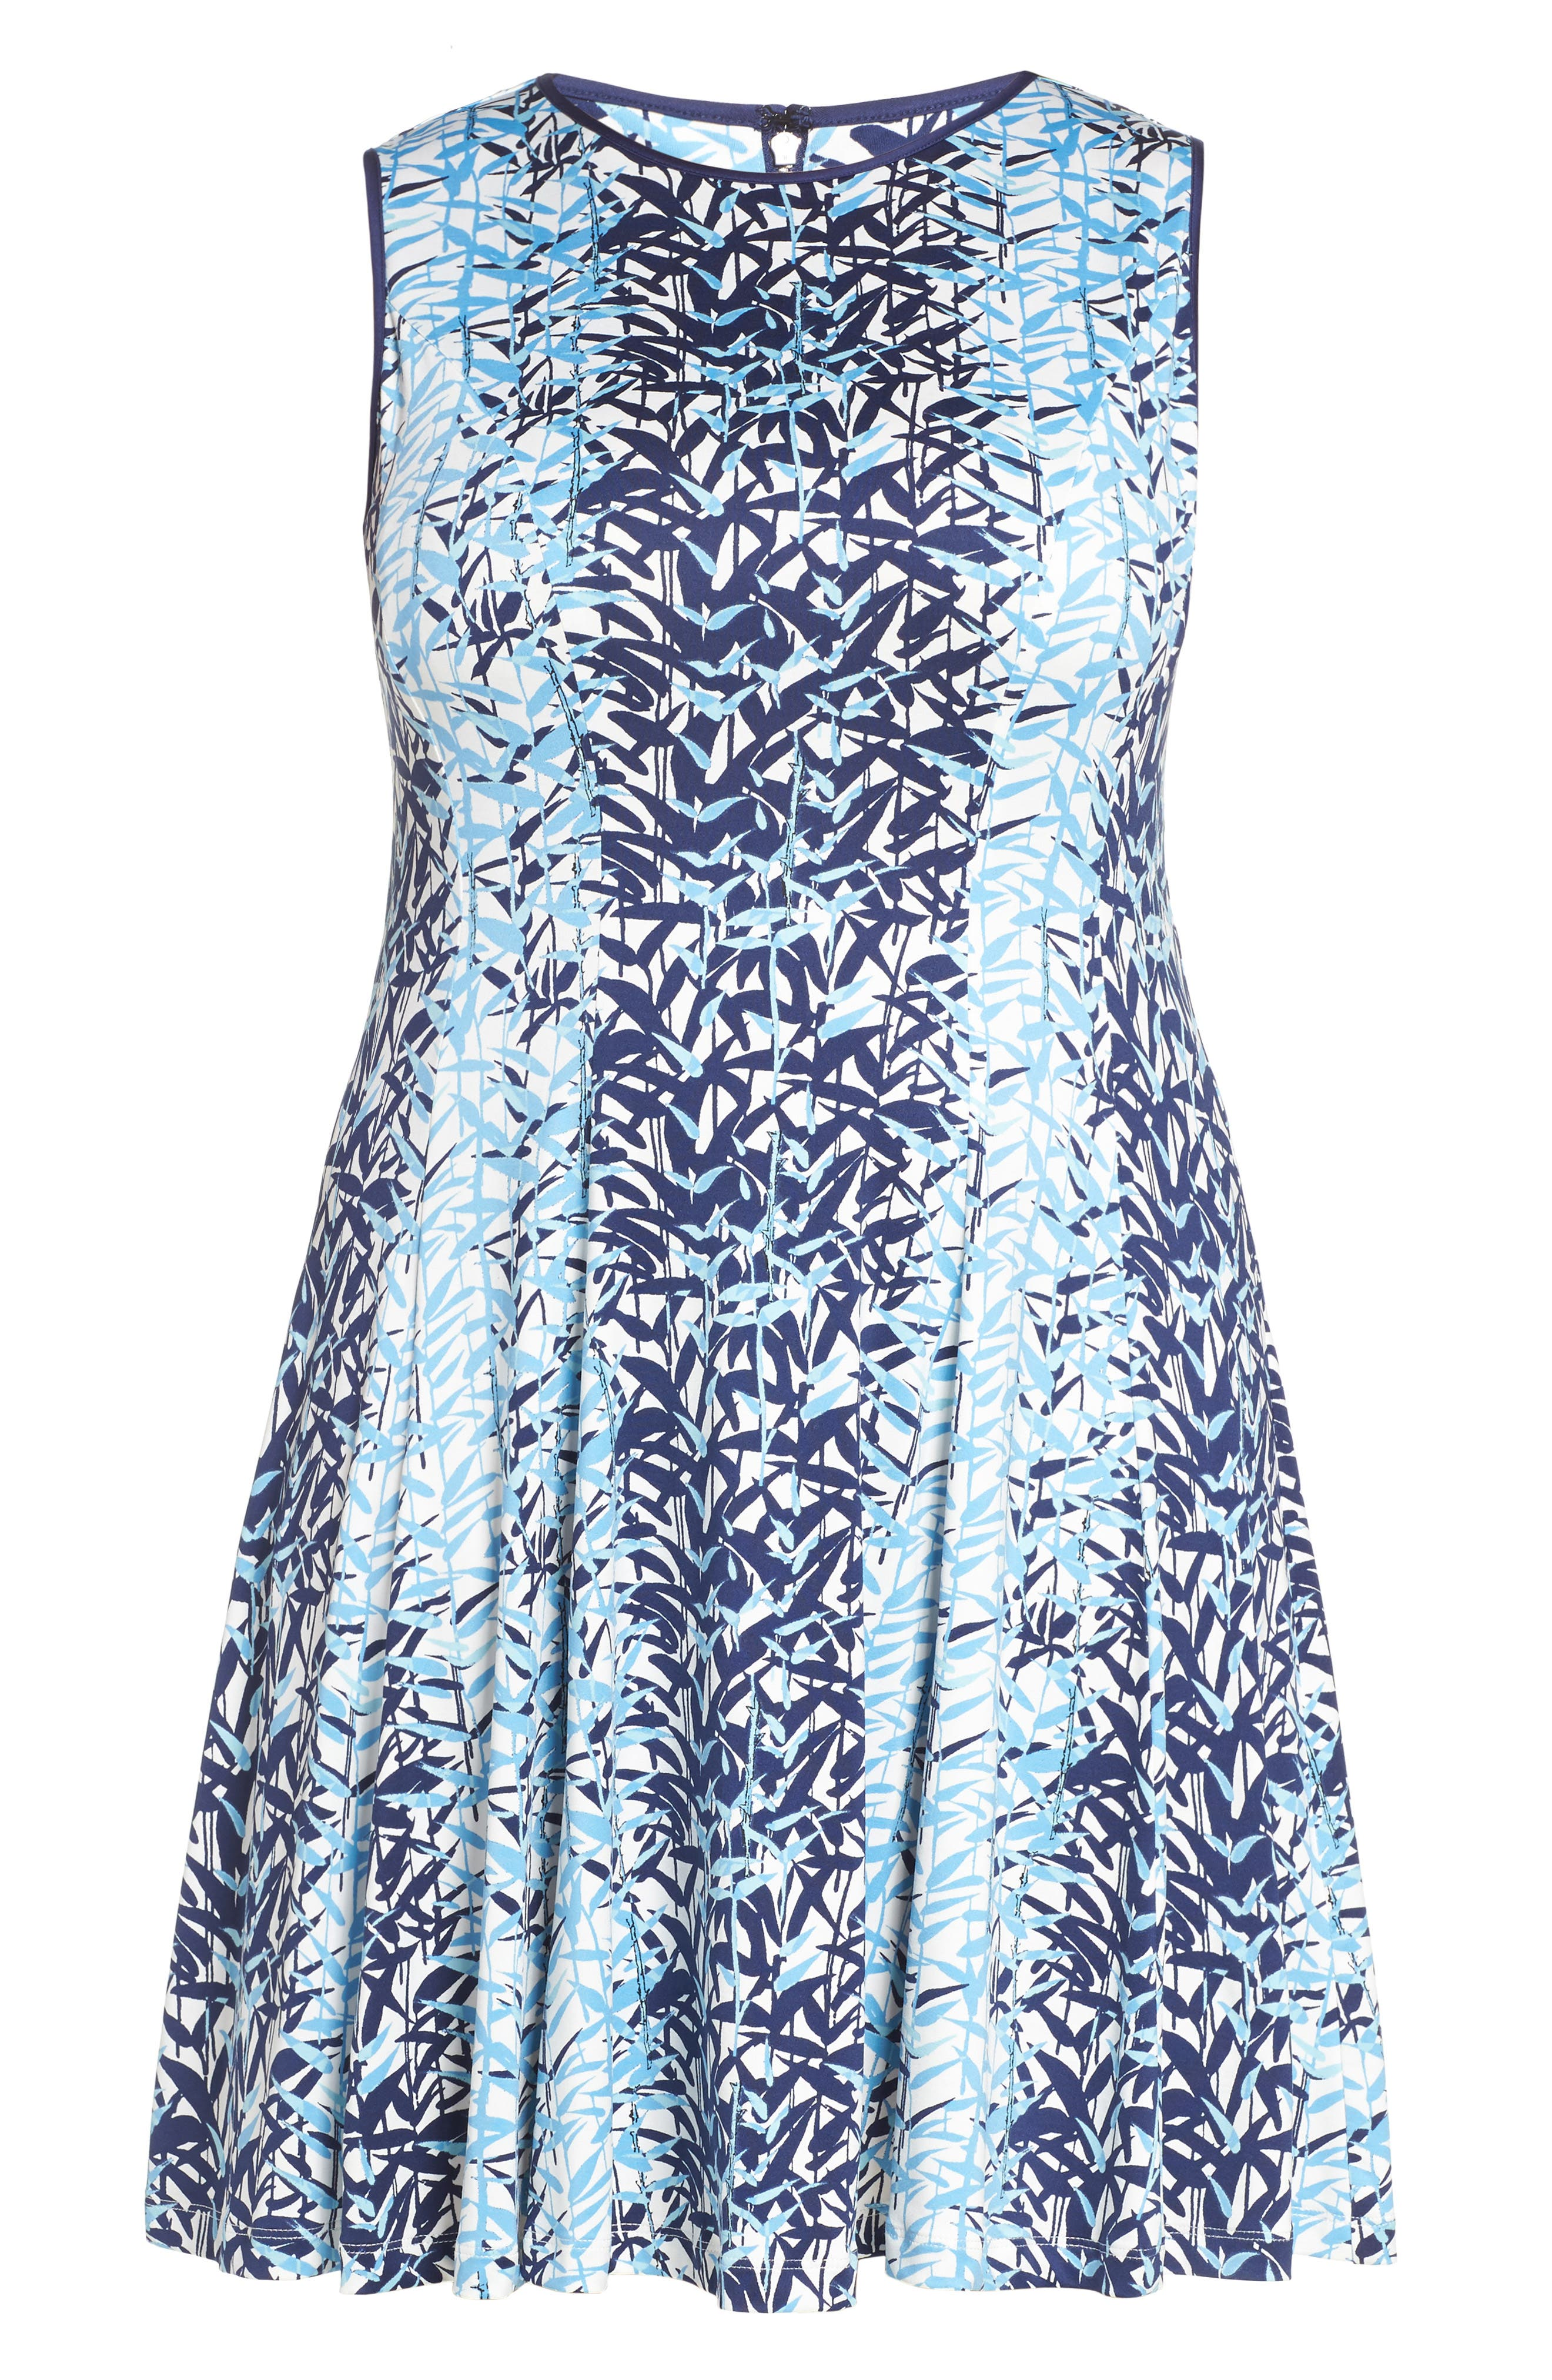 Abstract Print Jersey Fit & Flare Dress,                             Alternate thumbnail 6, color,                             410